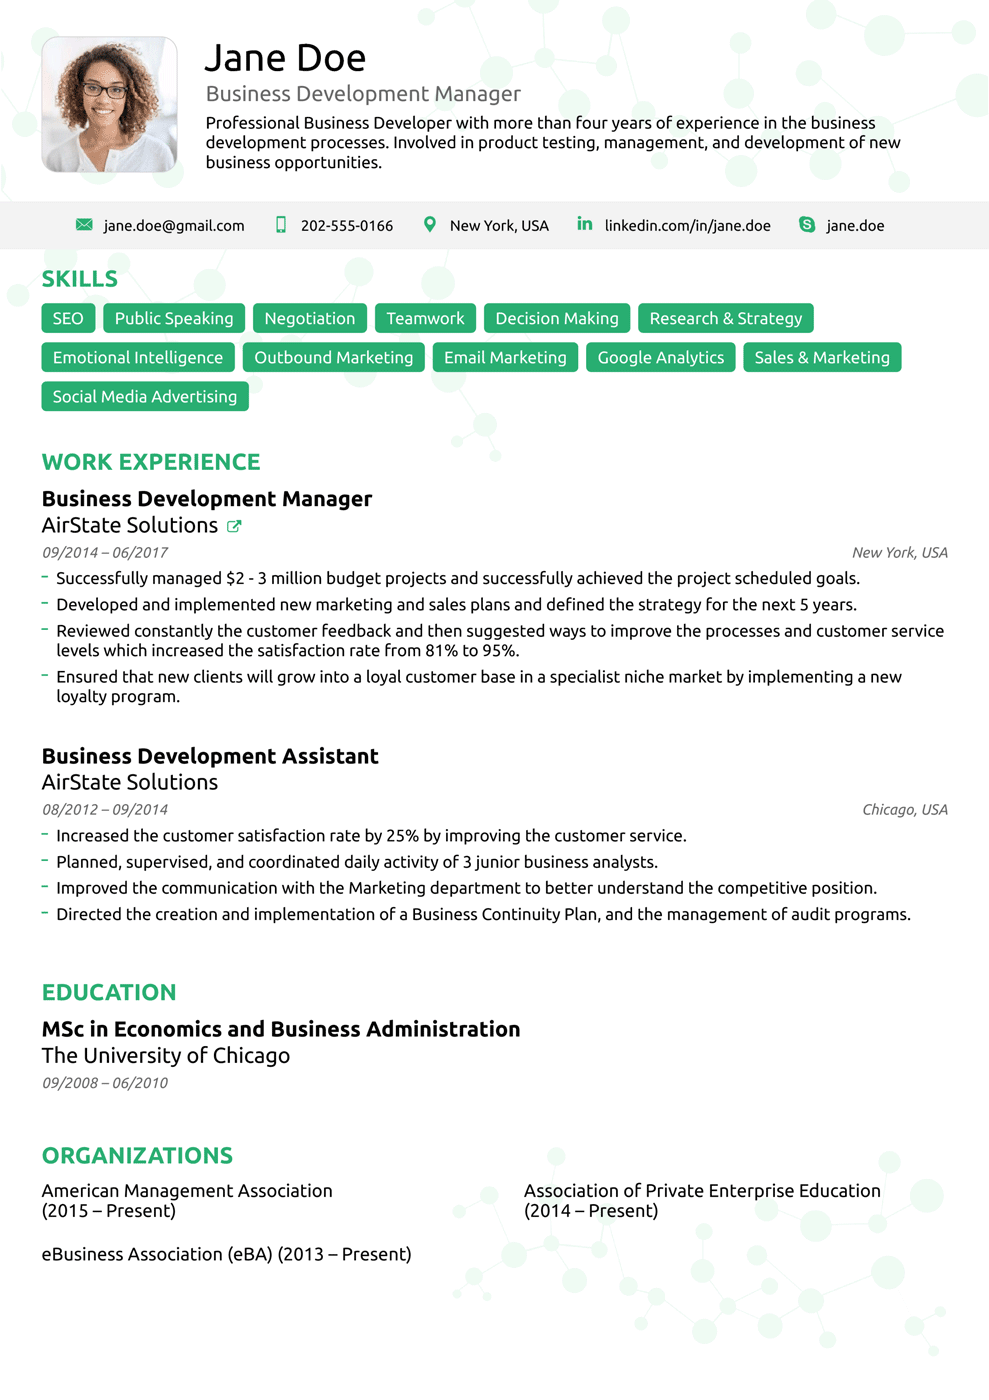 executive resume template - Updated Resume Templates